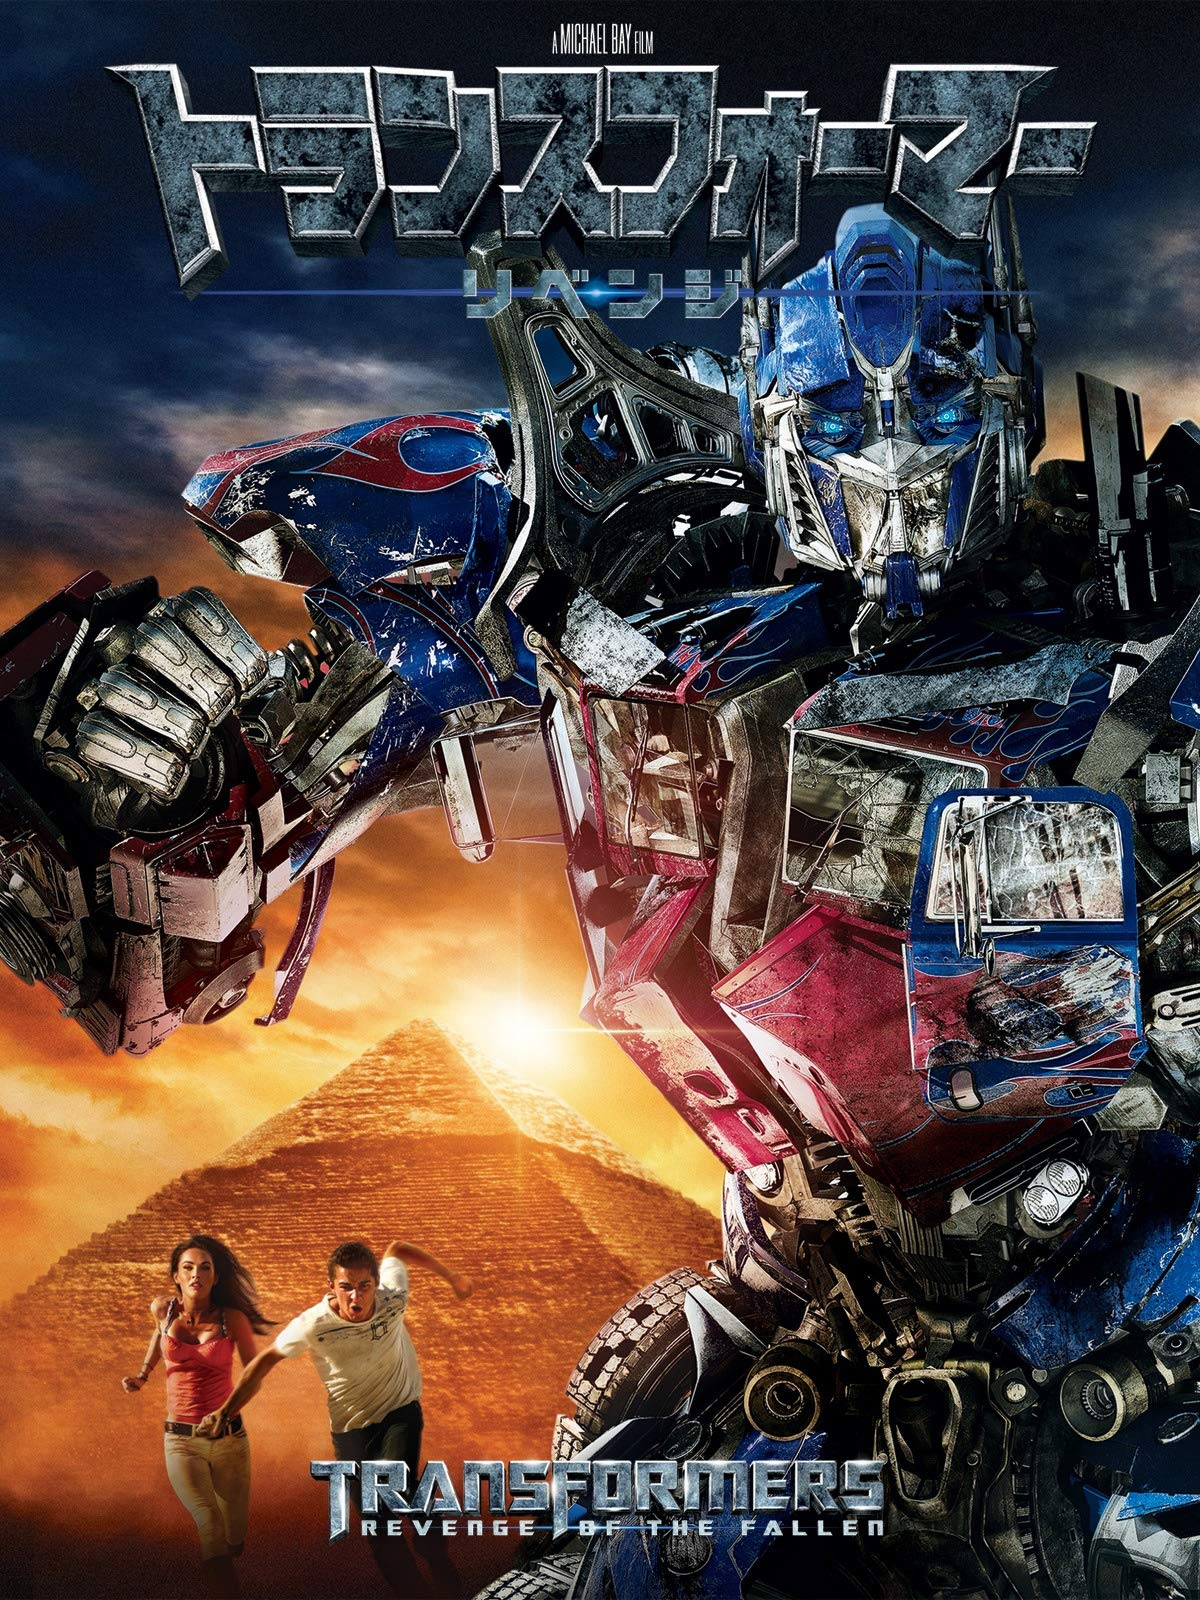 Eye catch transformers2 e1412231258476